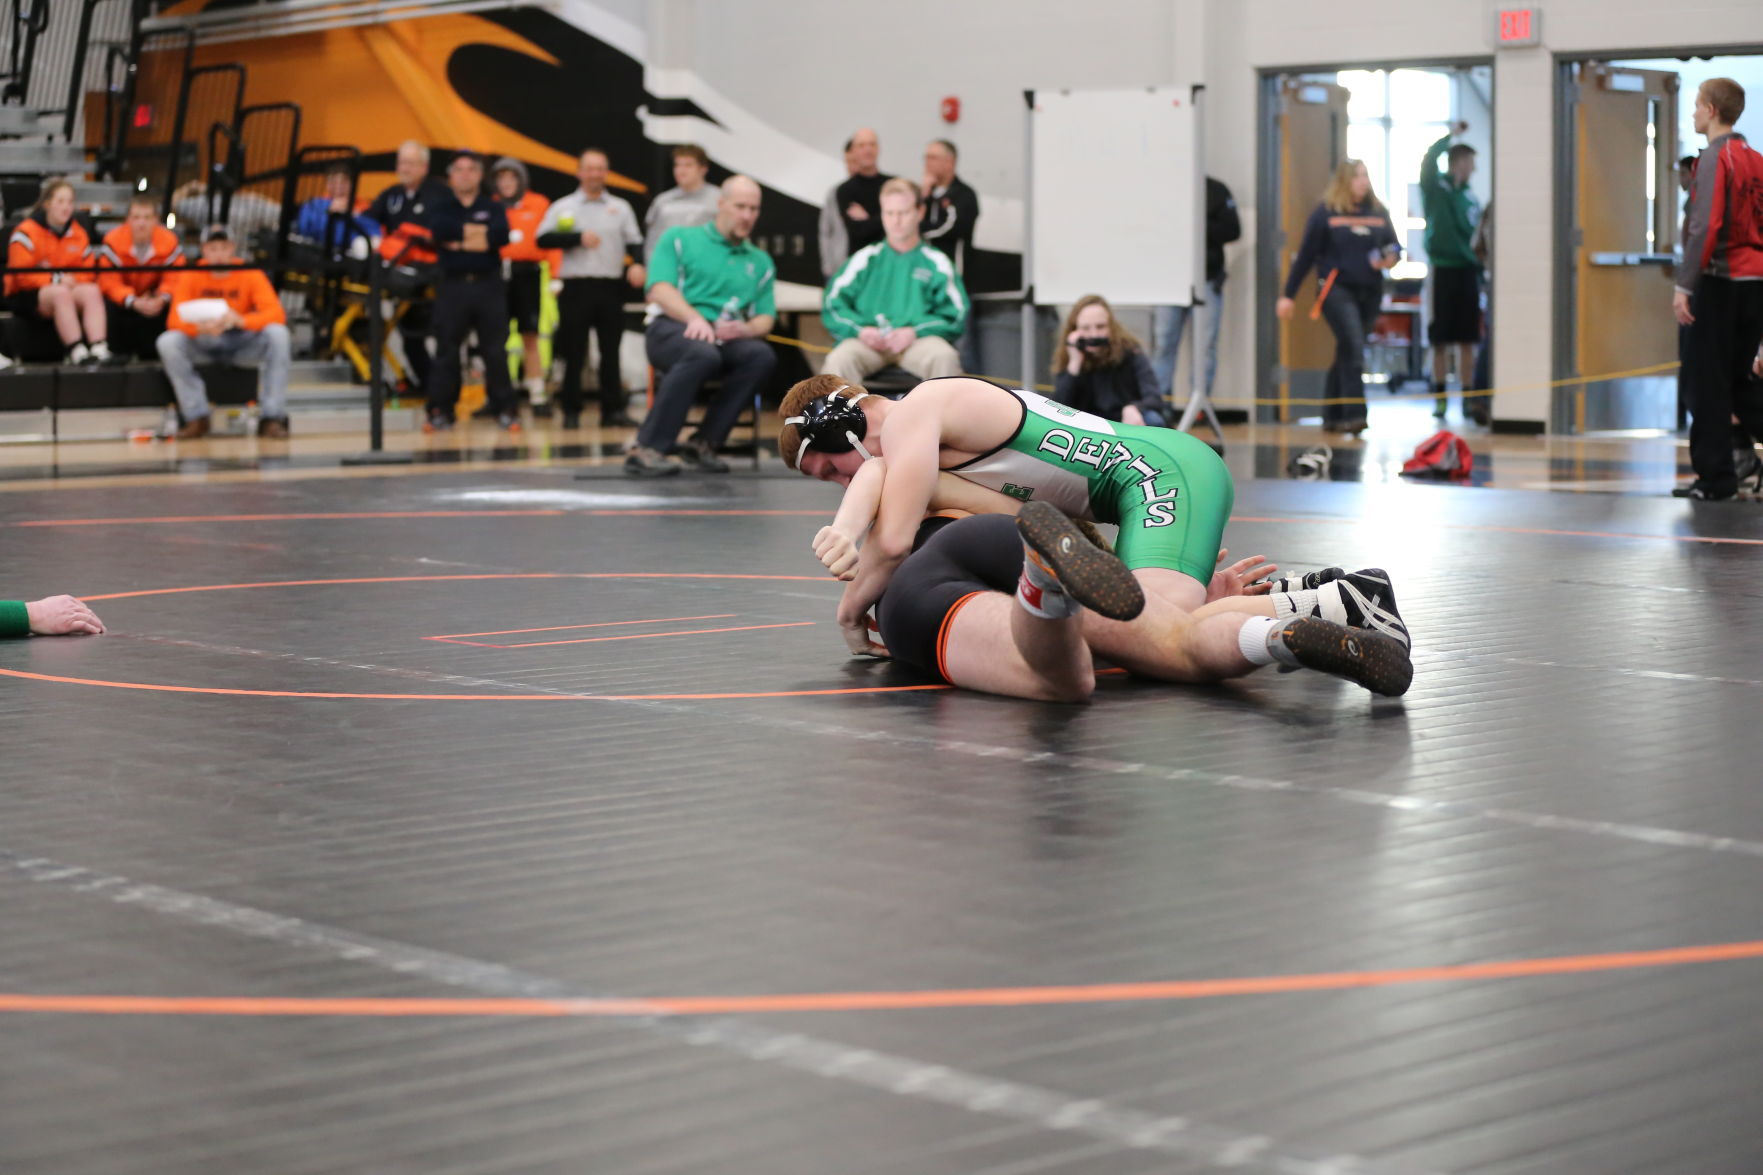 20170204-IMG_3235.JPG : wrestling sectionals - Sectionals, Sofas & Couches